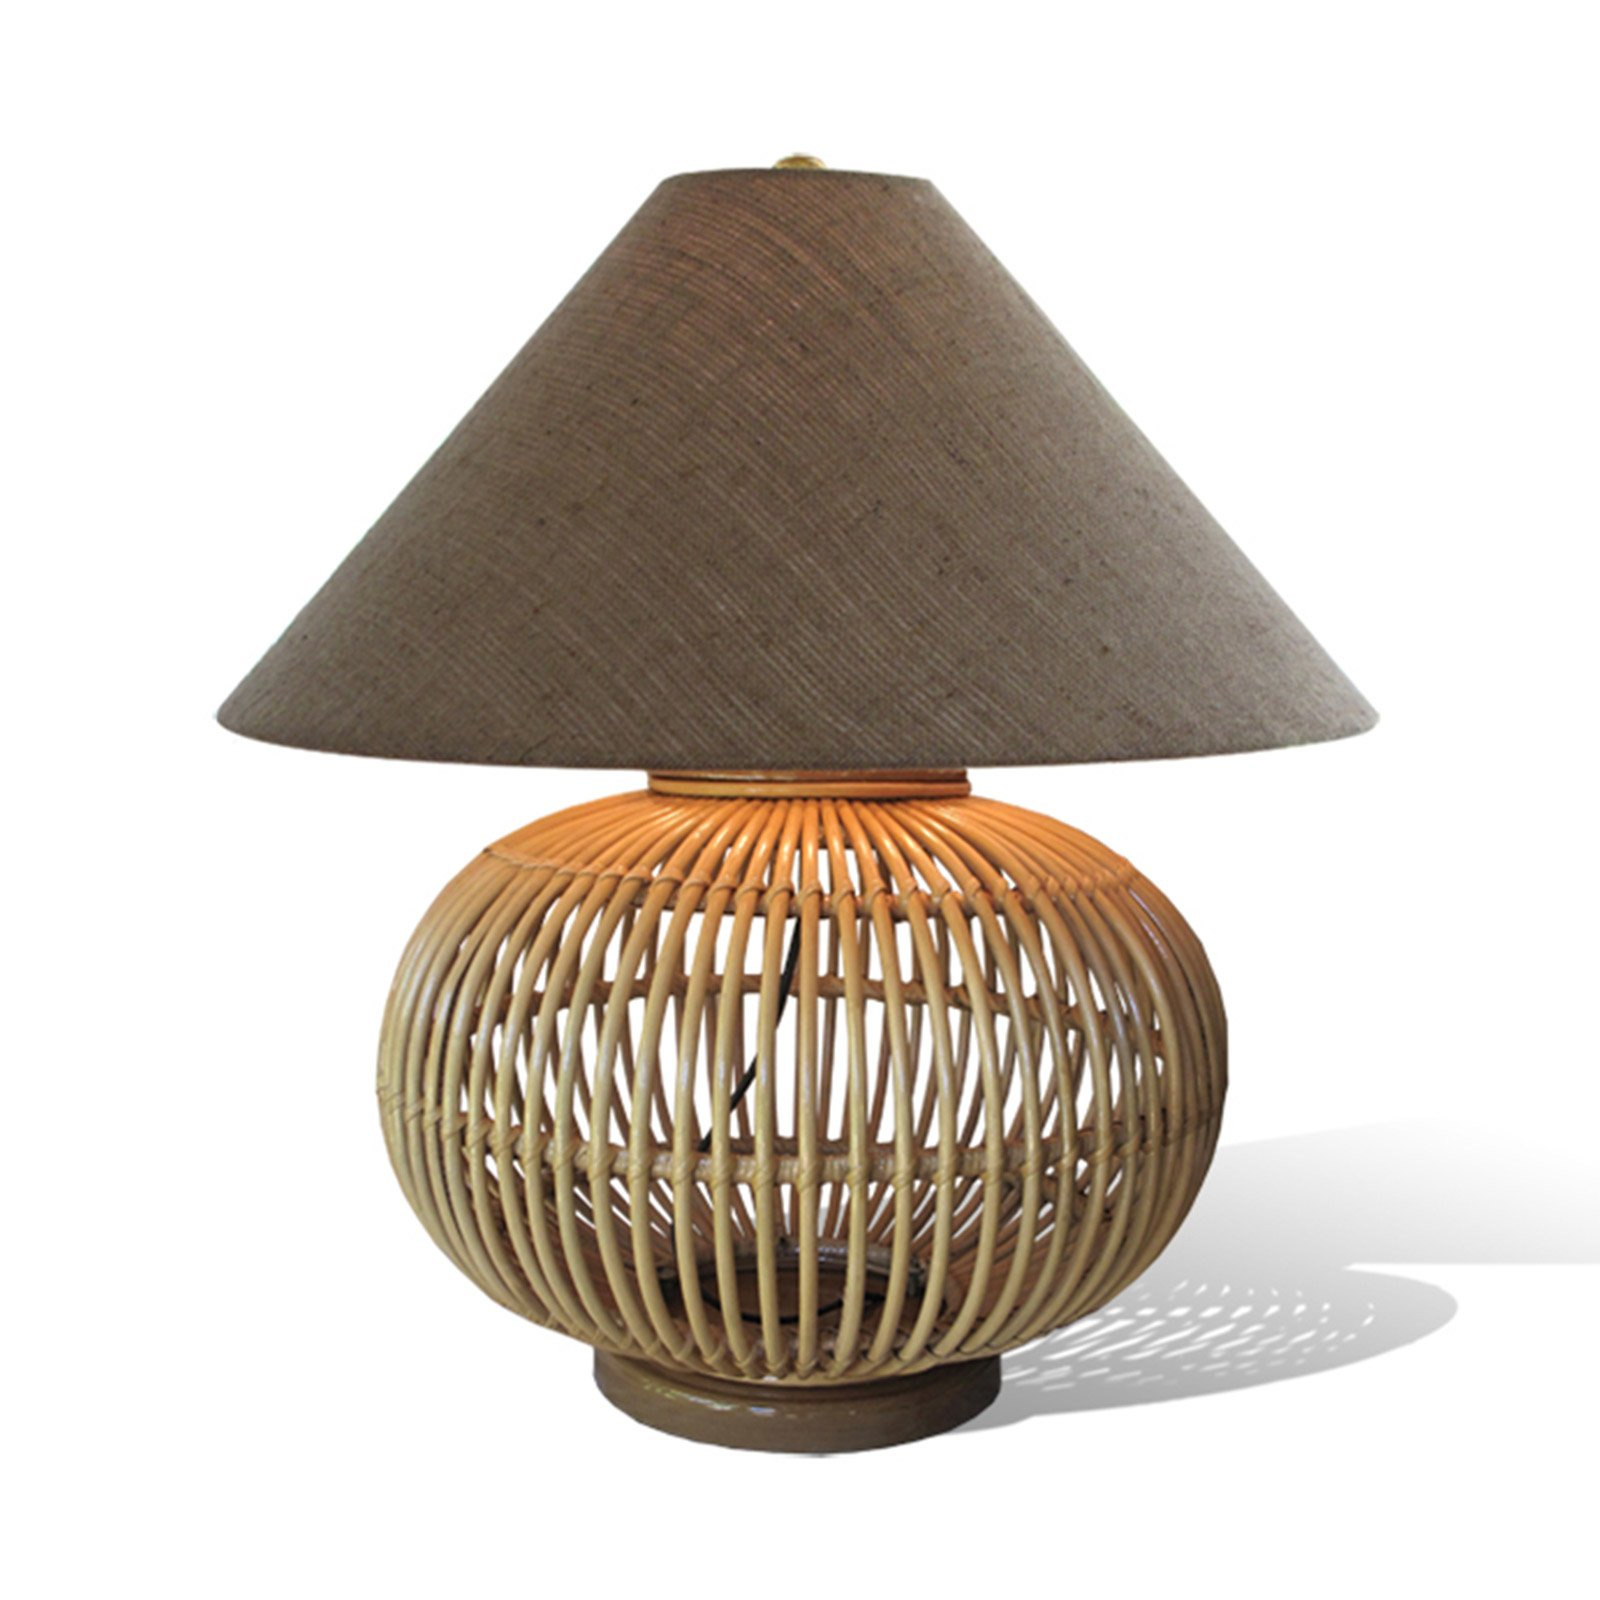 MOLOKAI TABLE LAMP / NATURAL